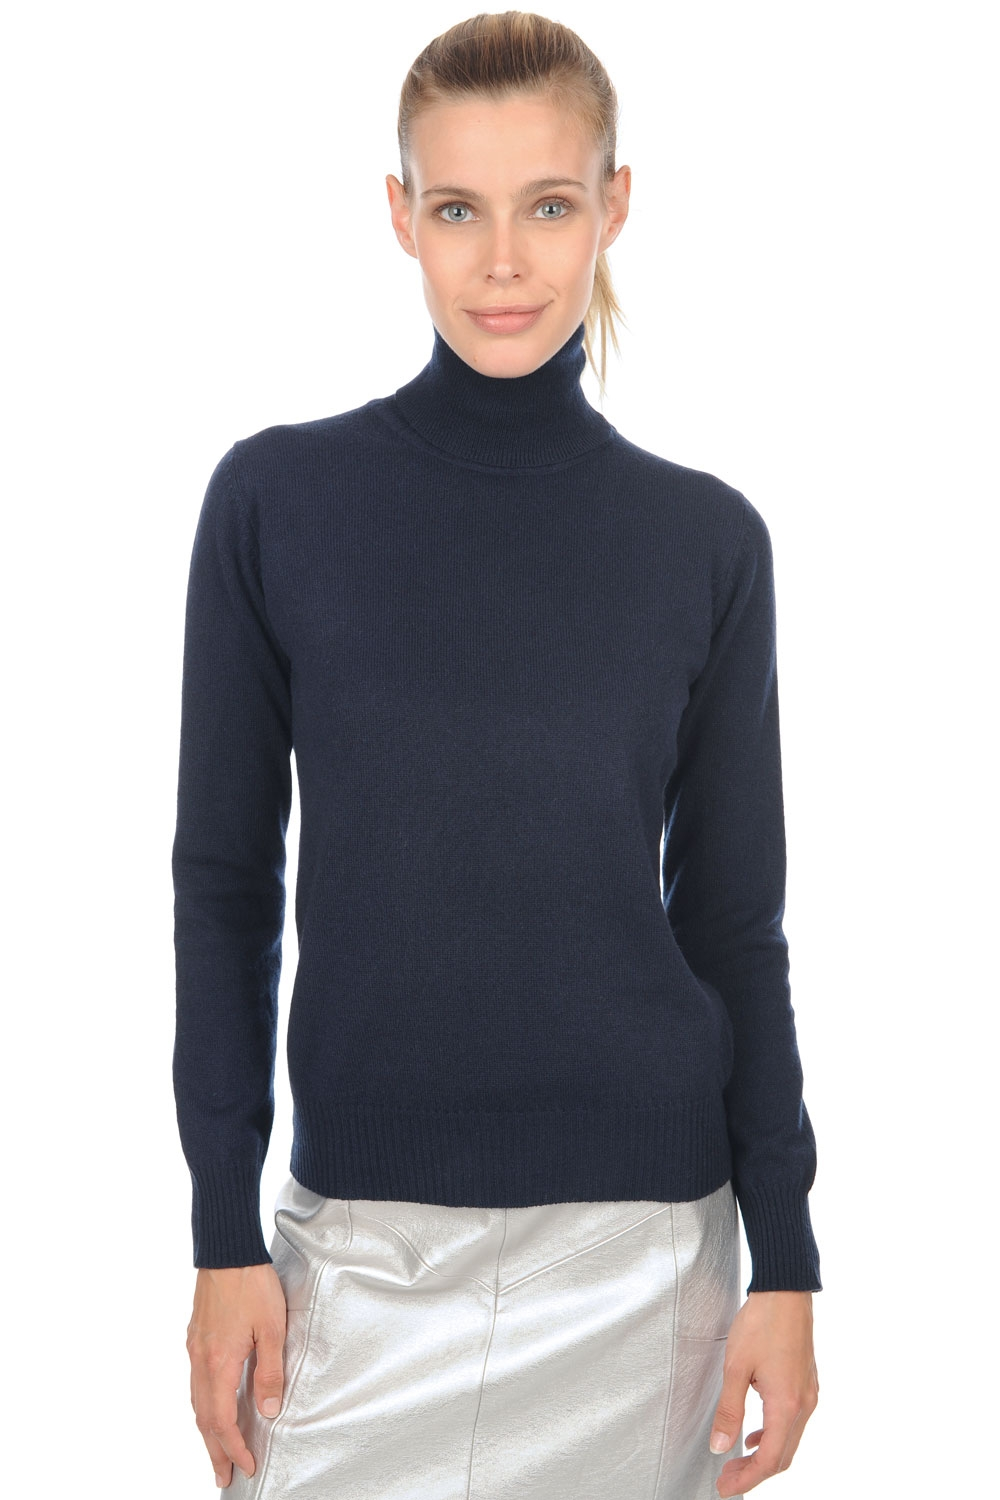 cashmere ladies basic sweaters at low prices tale dress blue xs